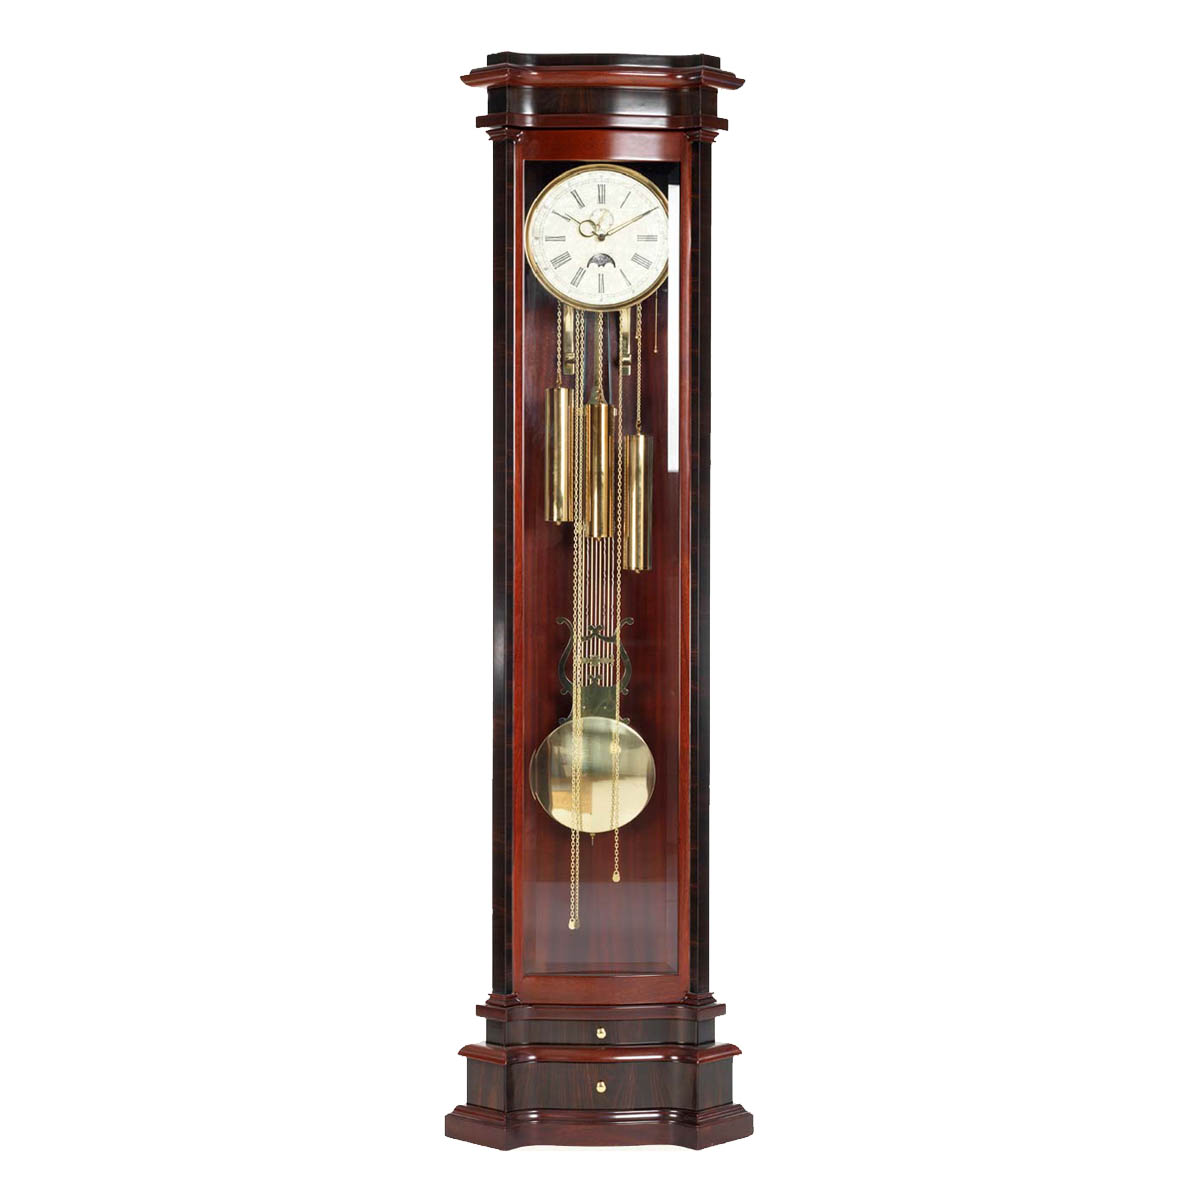 AADAN Grandfather Floor Clock